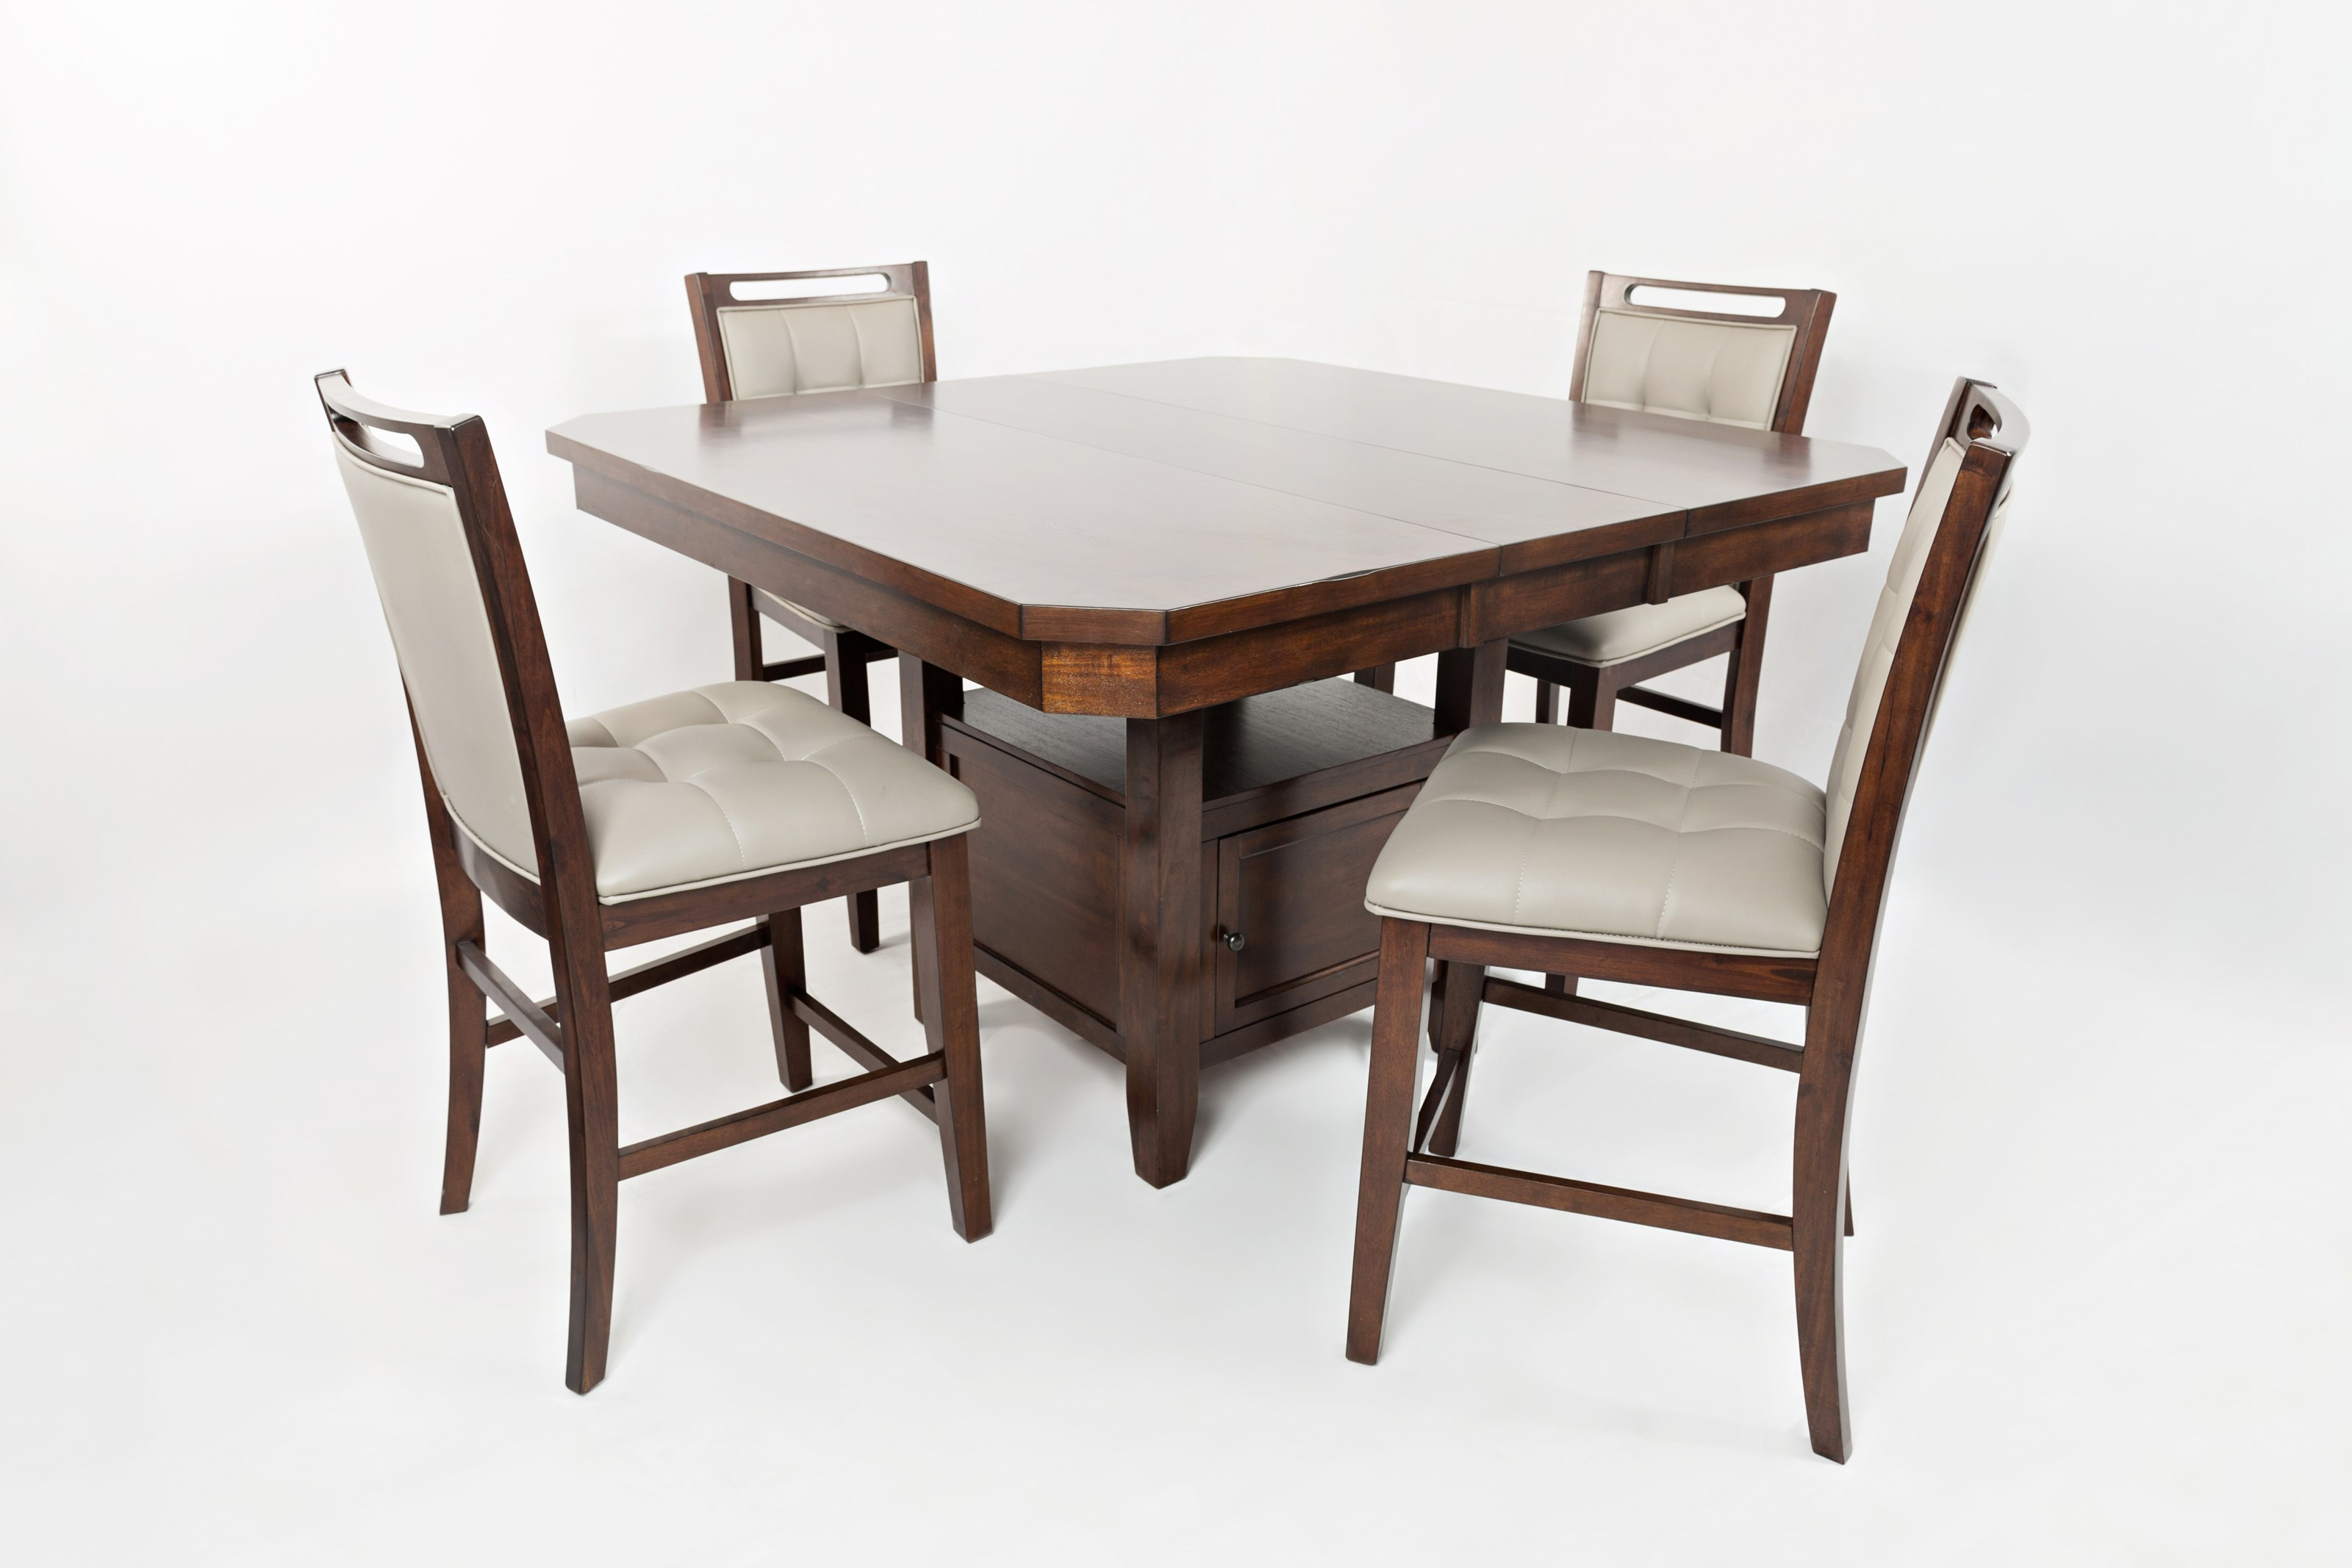 2 Person Dining Set Jofran Manchester Counter Height Dining Set 4 People